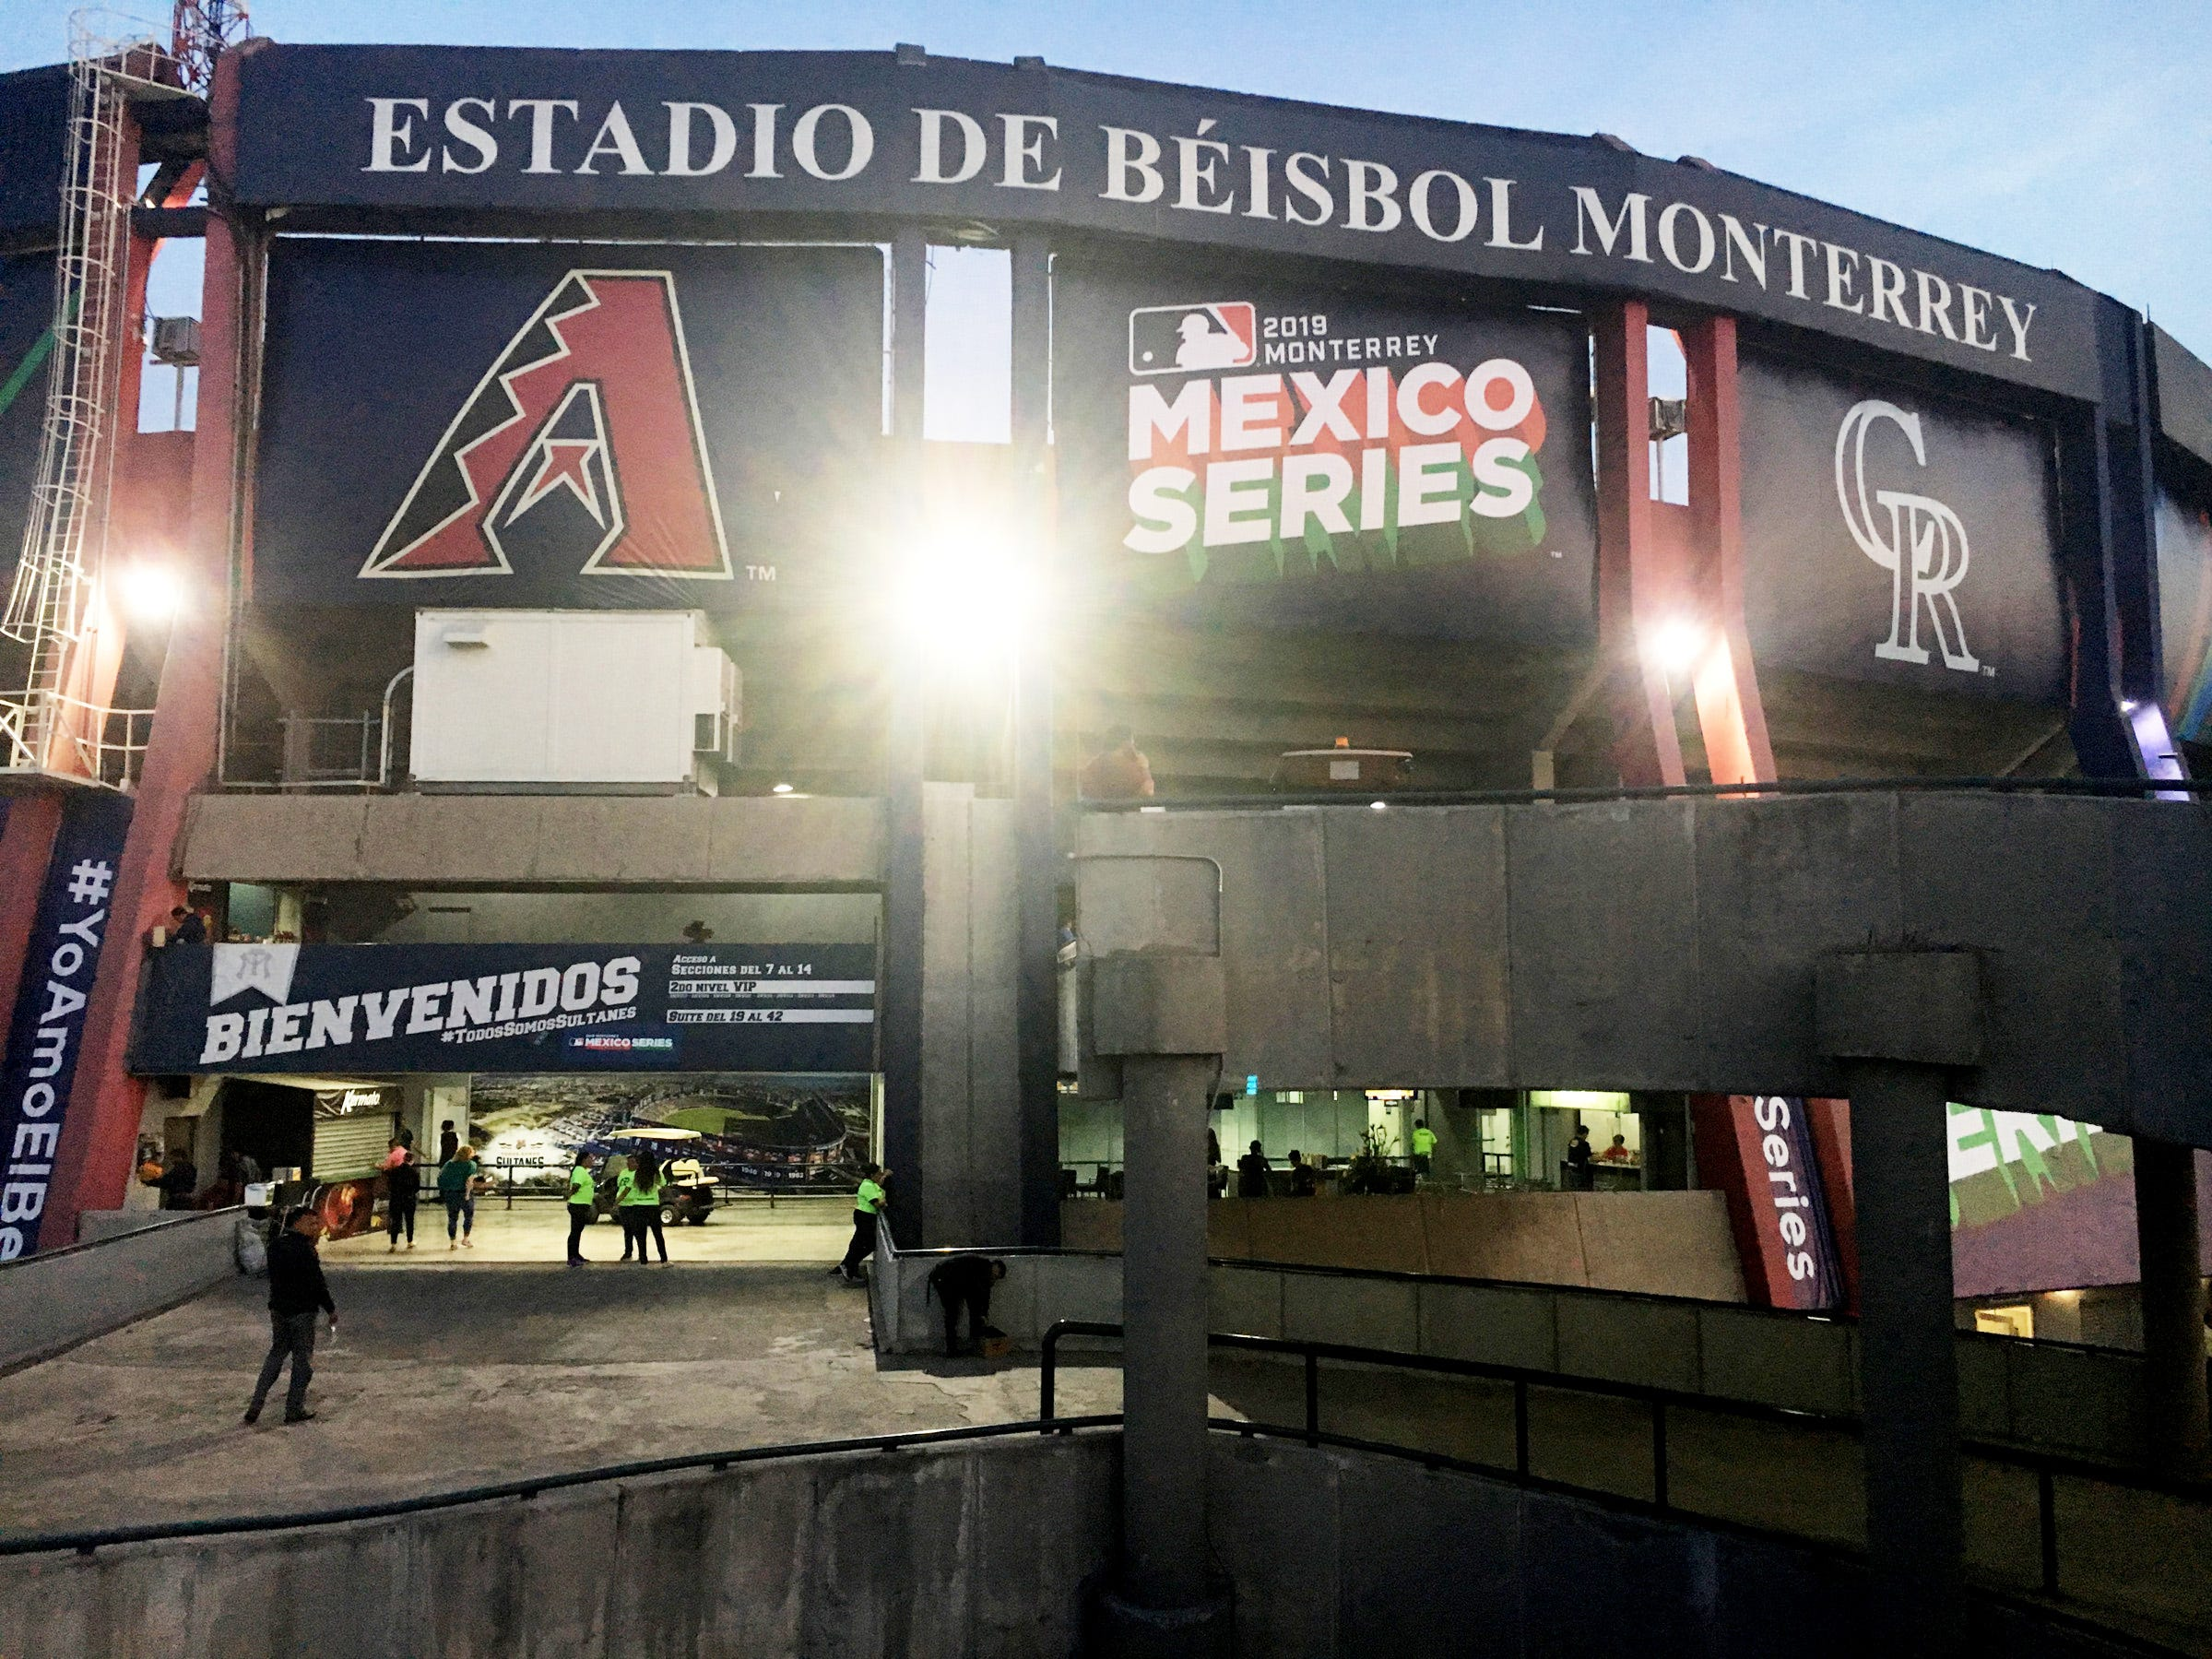 Banners hang outside the Estadio de Beisbol in Monterrey, Mexico, where the Arizona Diamondbacks and the Colorado Rockies played two spring-training games in March 2019.